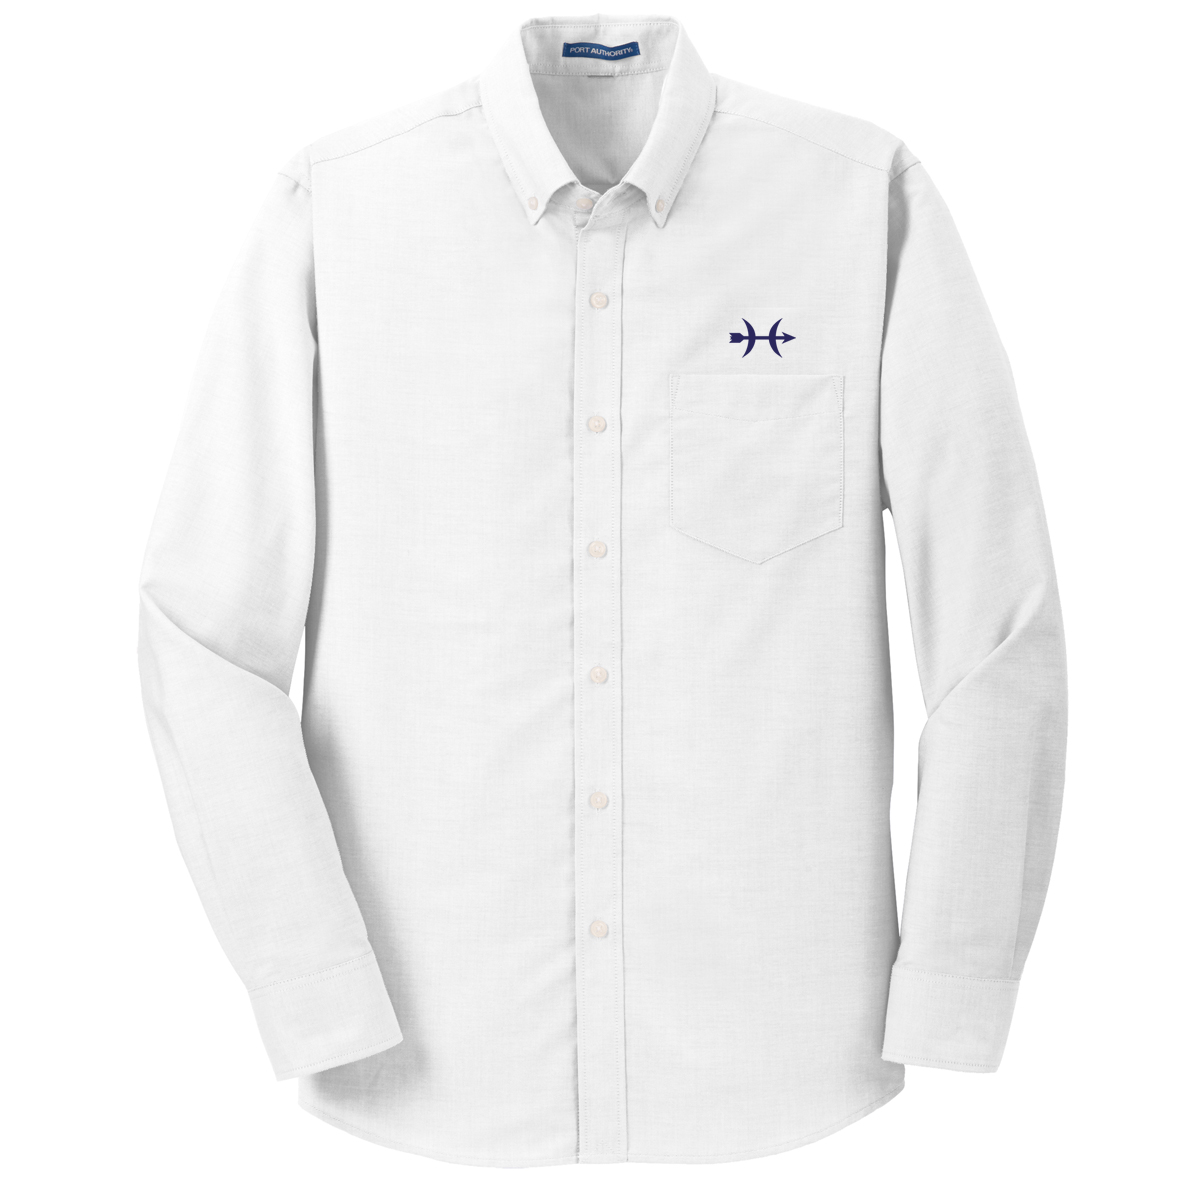 Hunt Yachts- M's Oxford Shirt